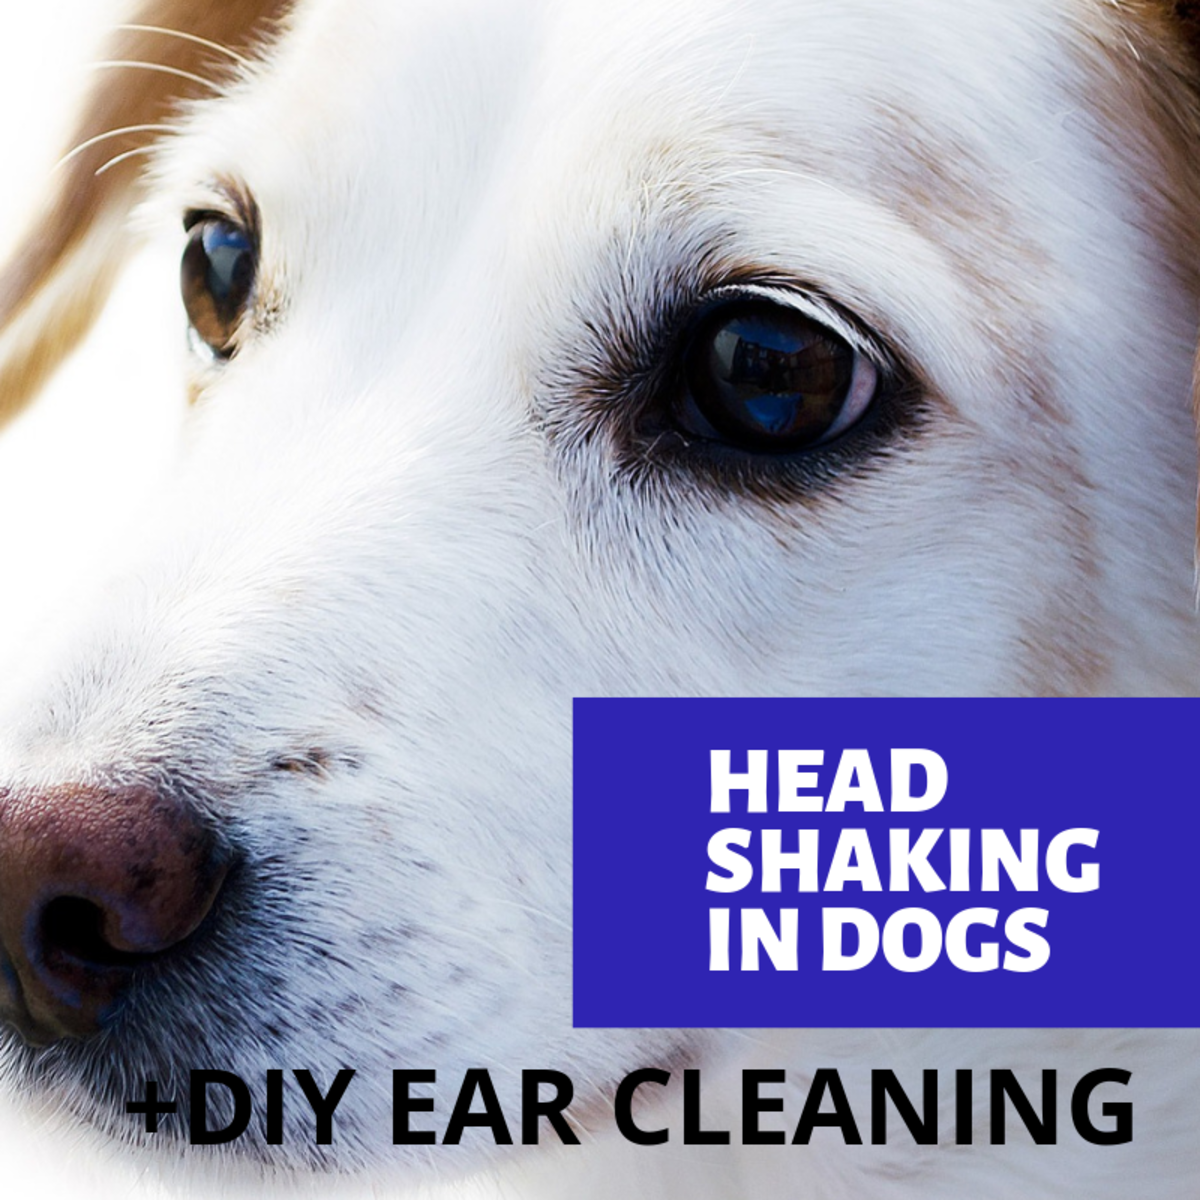 Why is your dog shaking its head?